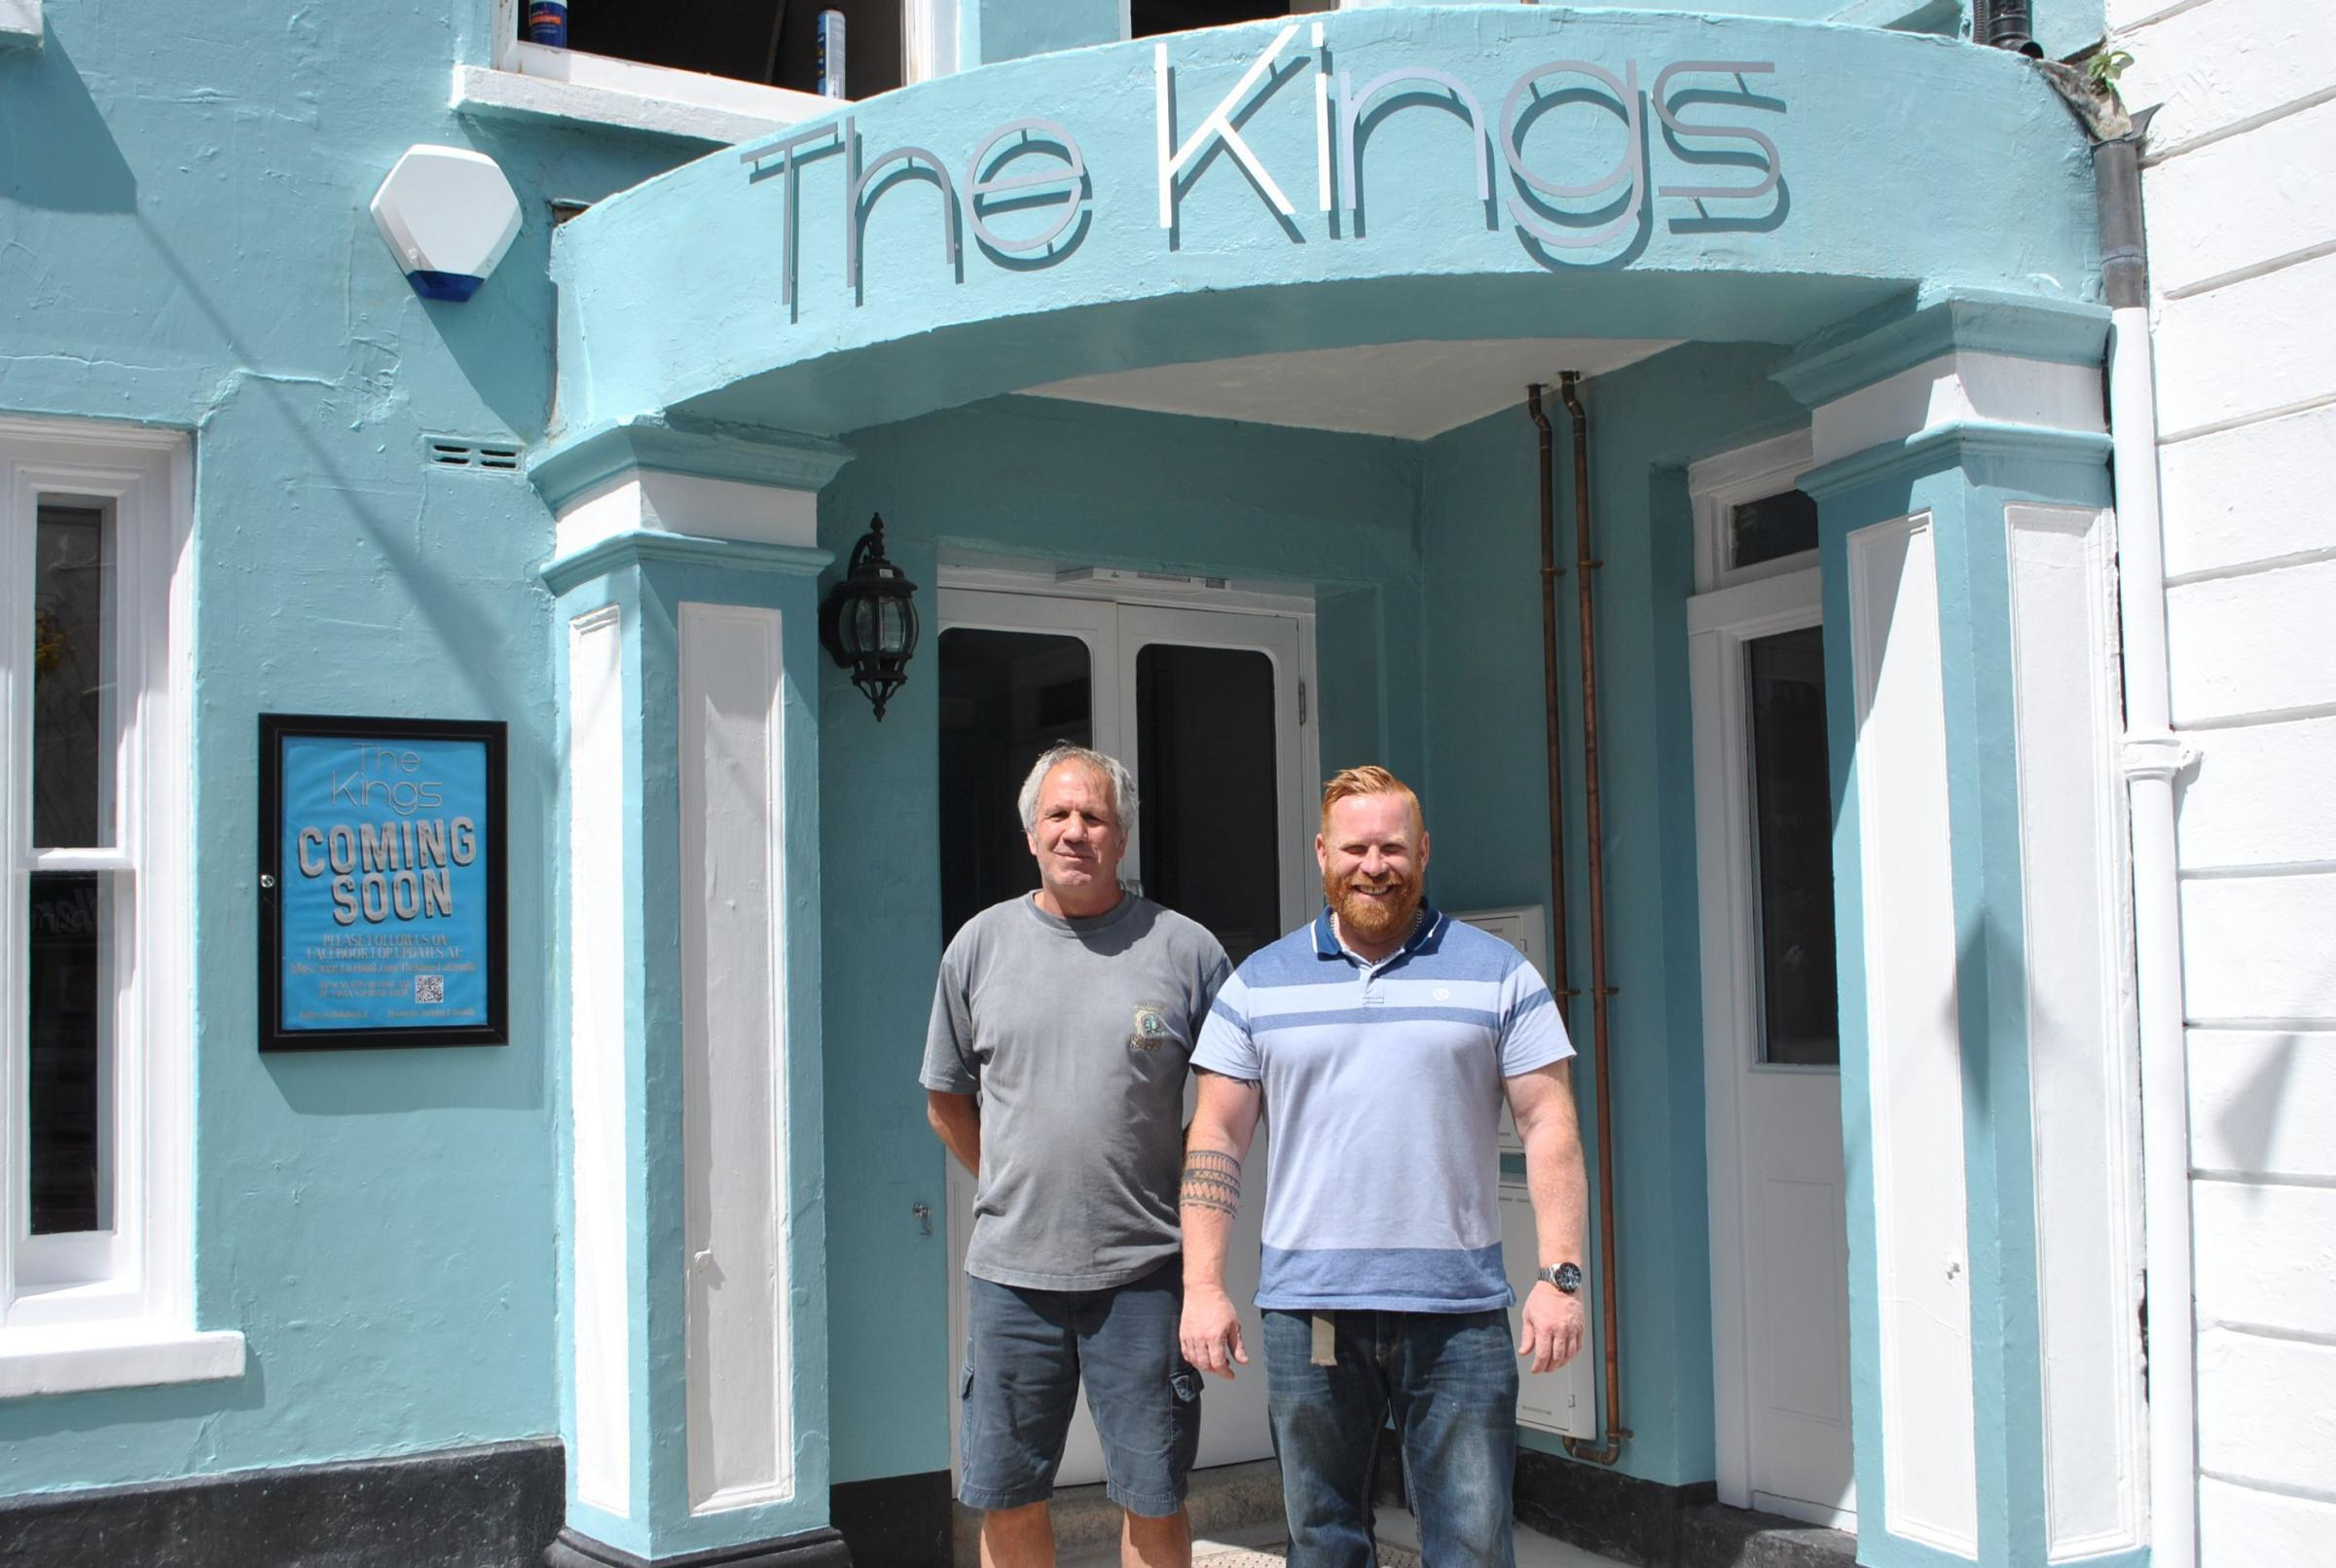 Company directors Chris Sanders and Simon Fudge outside the revamped and renamed The Kings